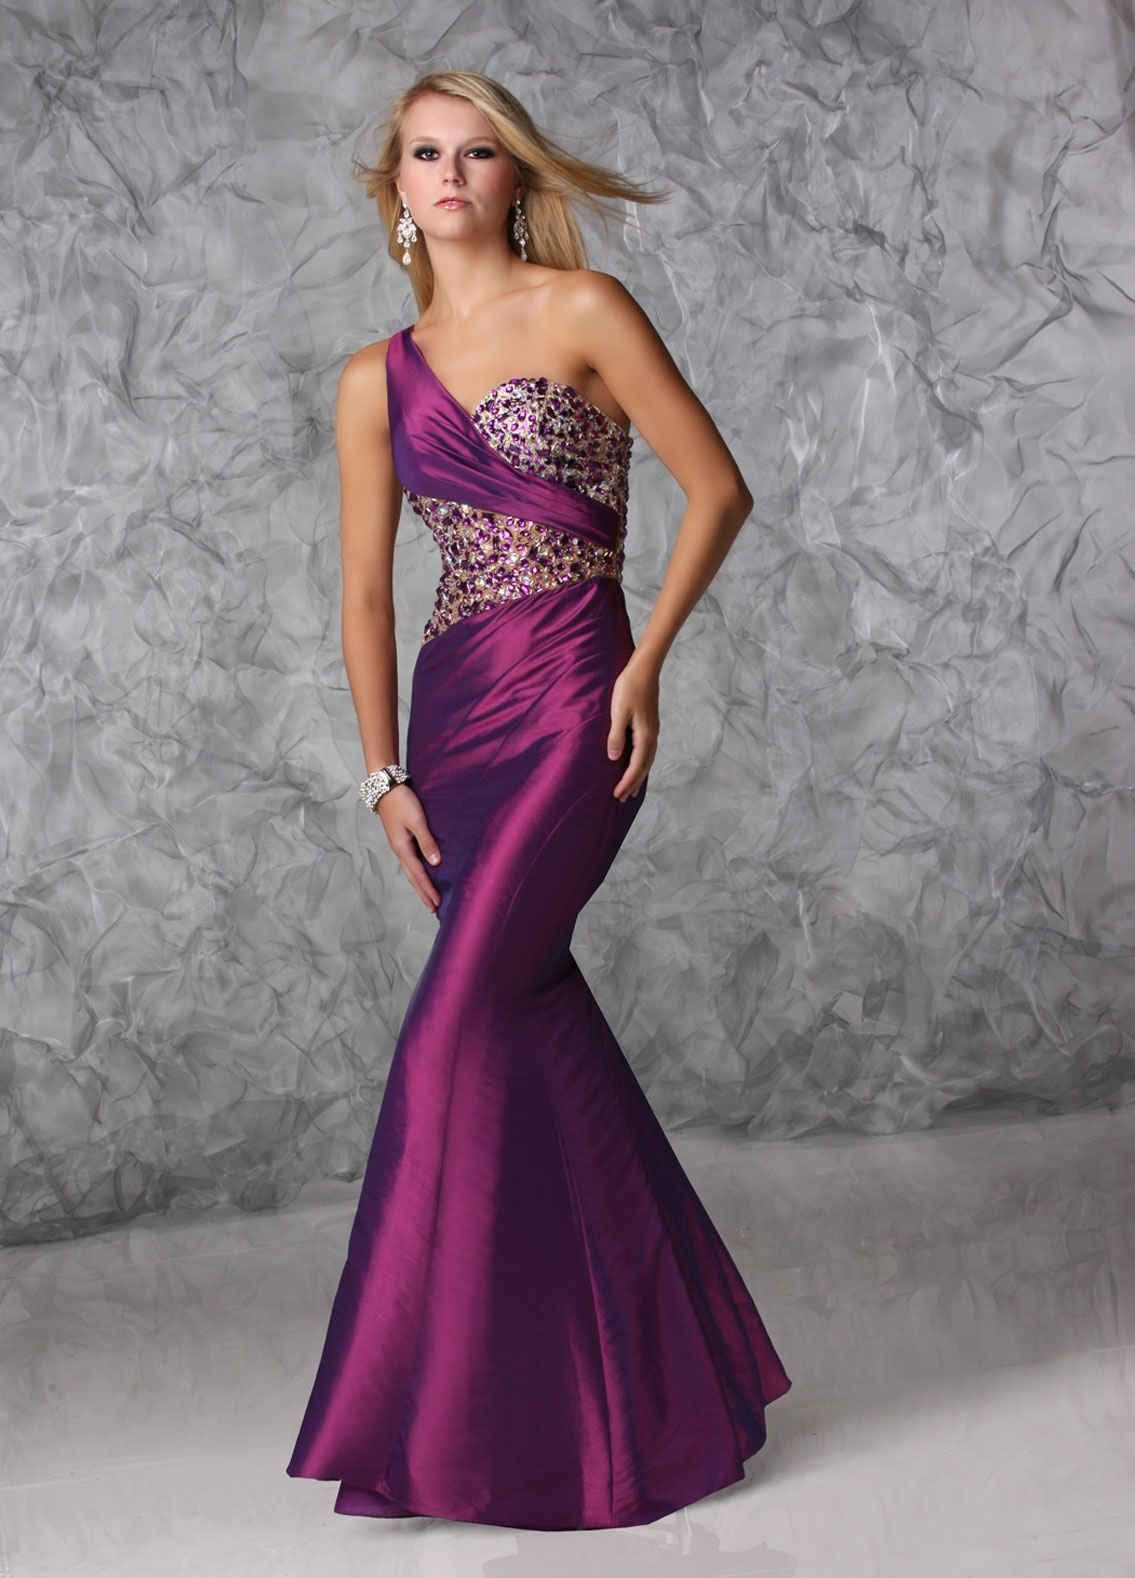 Chic one shoulder purple trumpet mermaid prom dress cxc